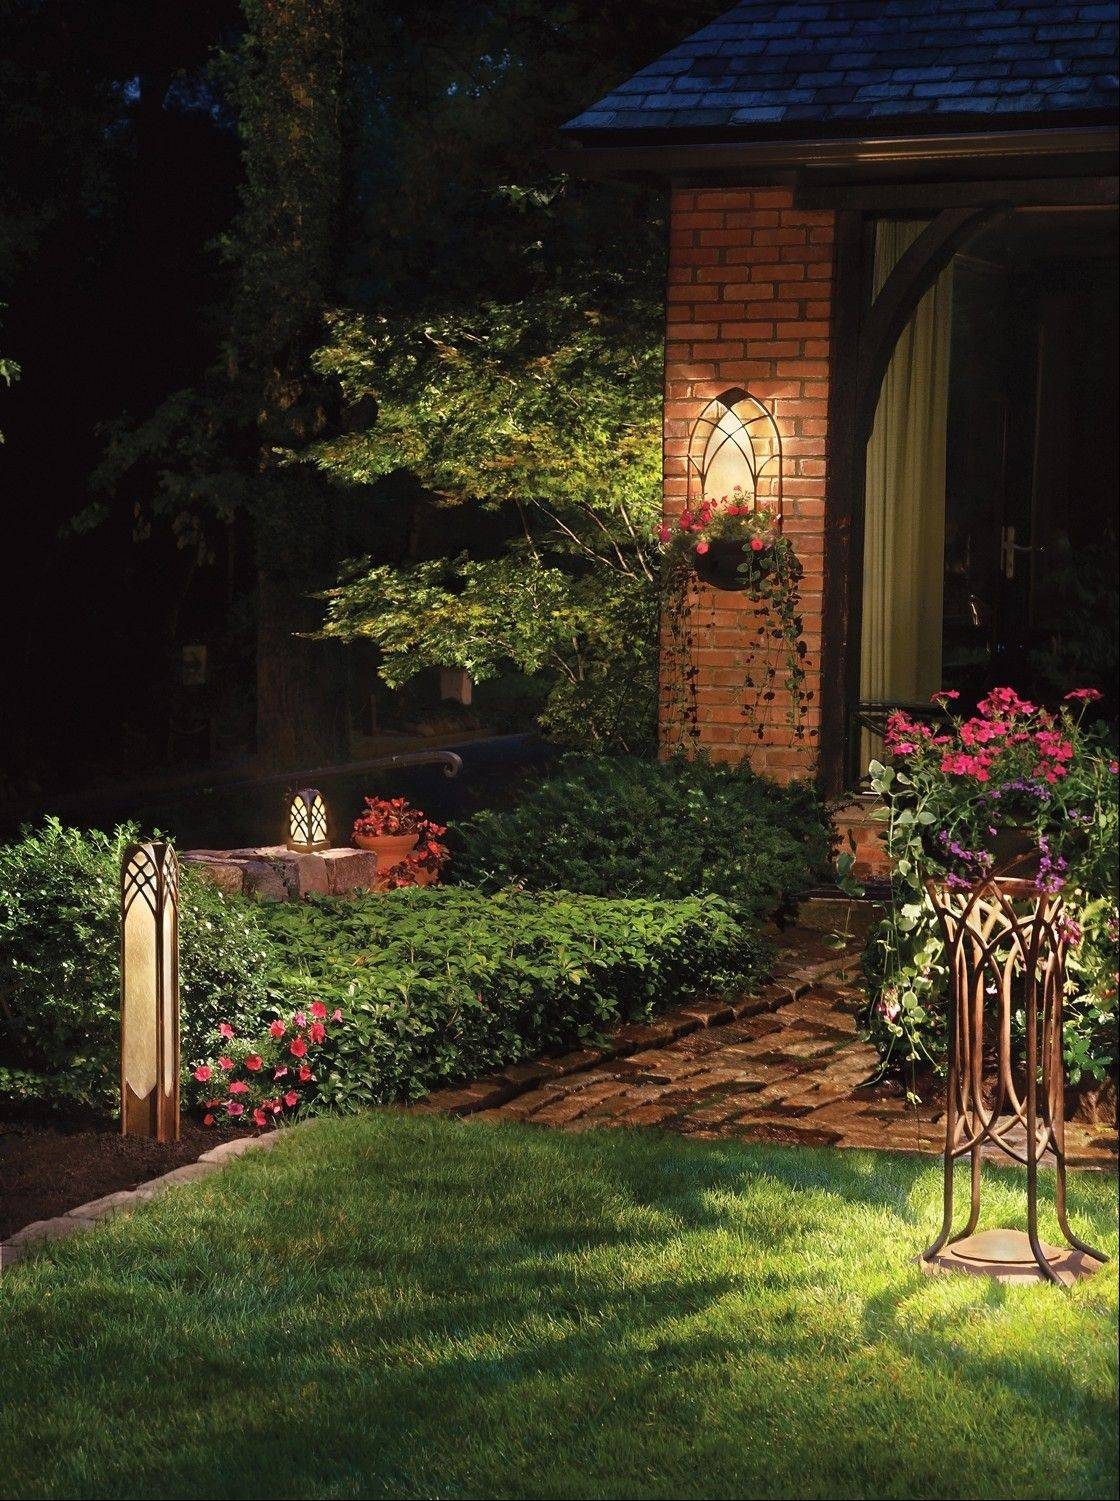 Your path can be lighted with decorative fixtures or ones that fade into the background.